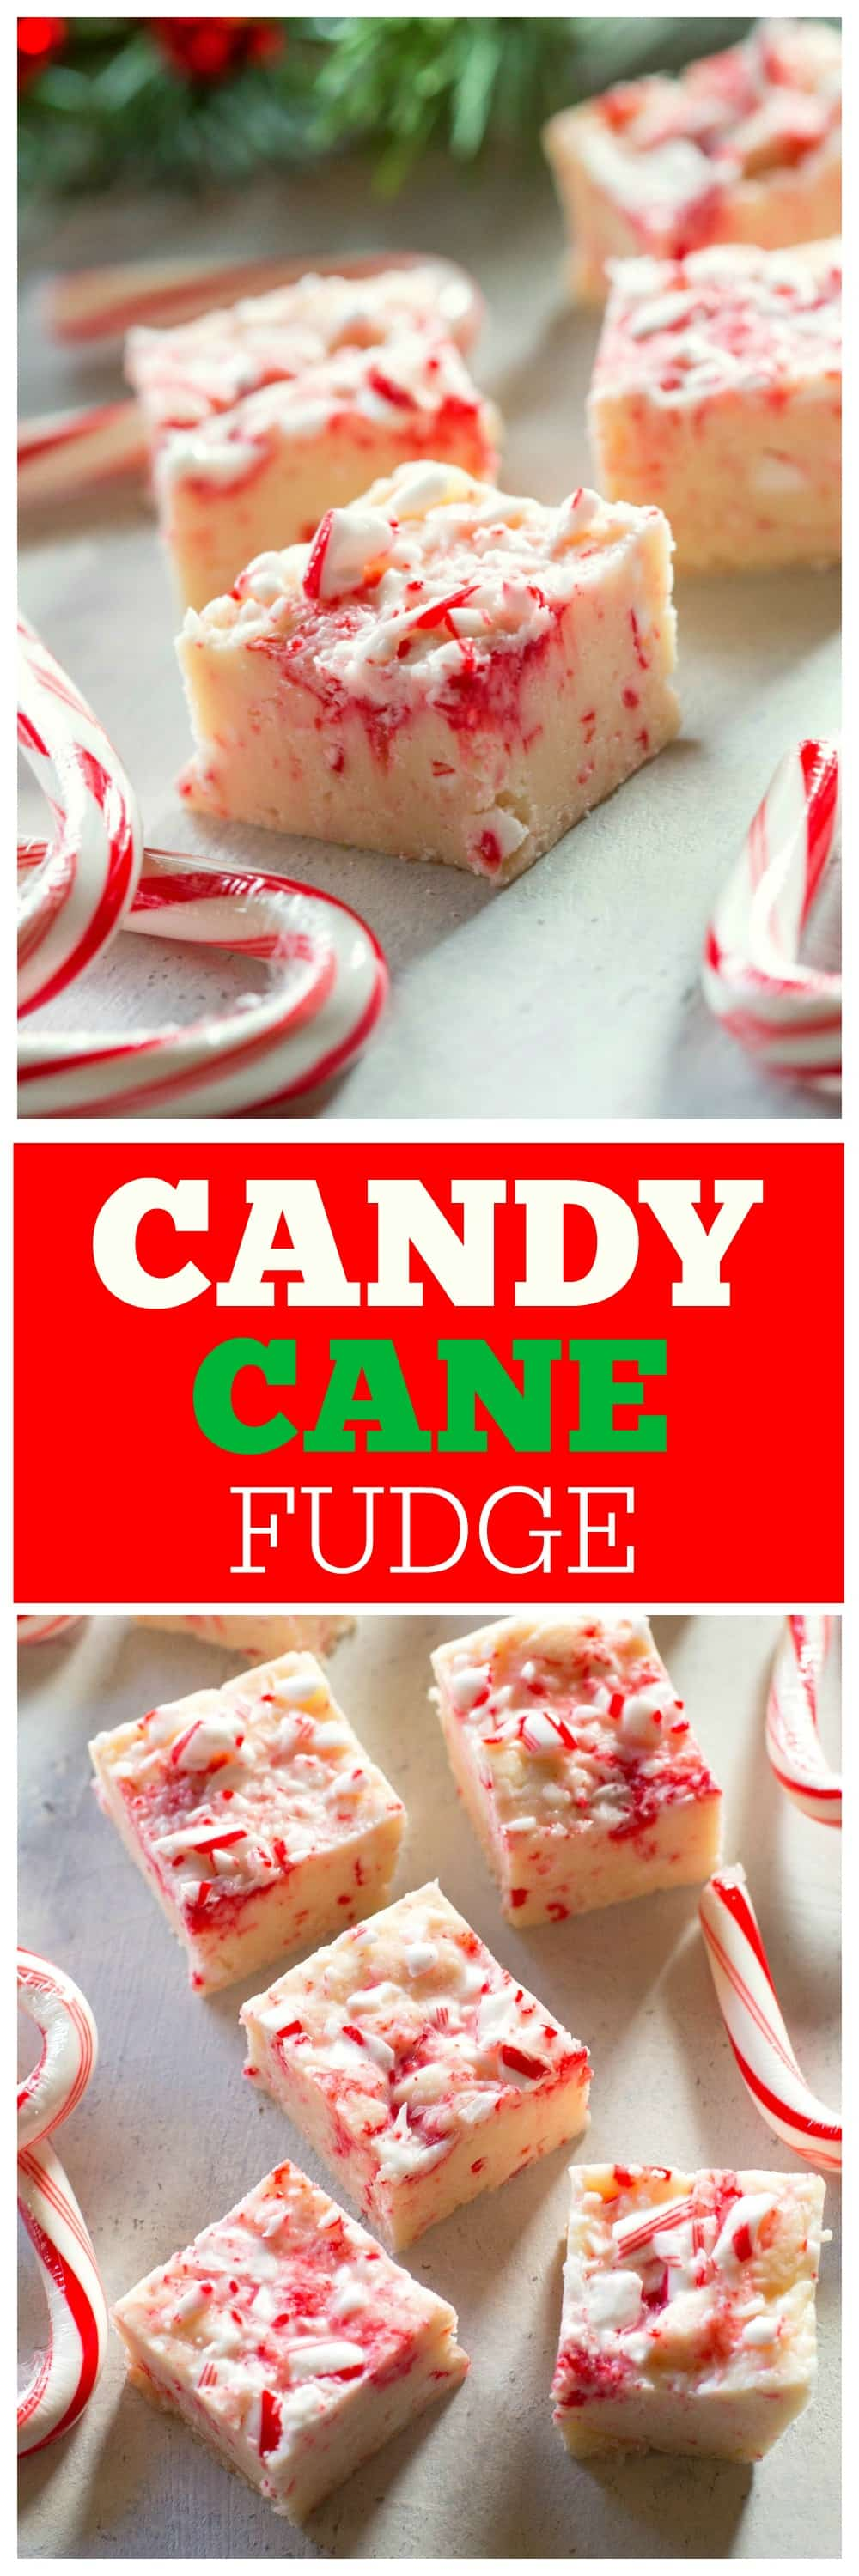 Candy Cane Fudge - only 5 ingredients and so delicious. #candy #cane #fudge #christmas #dessert